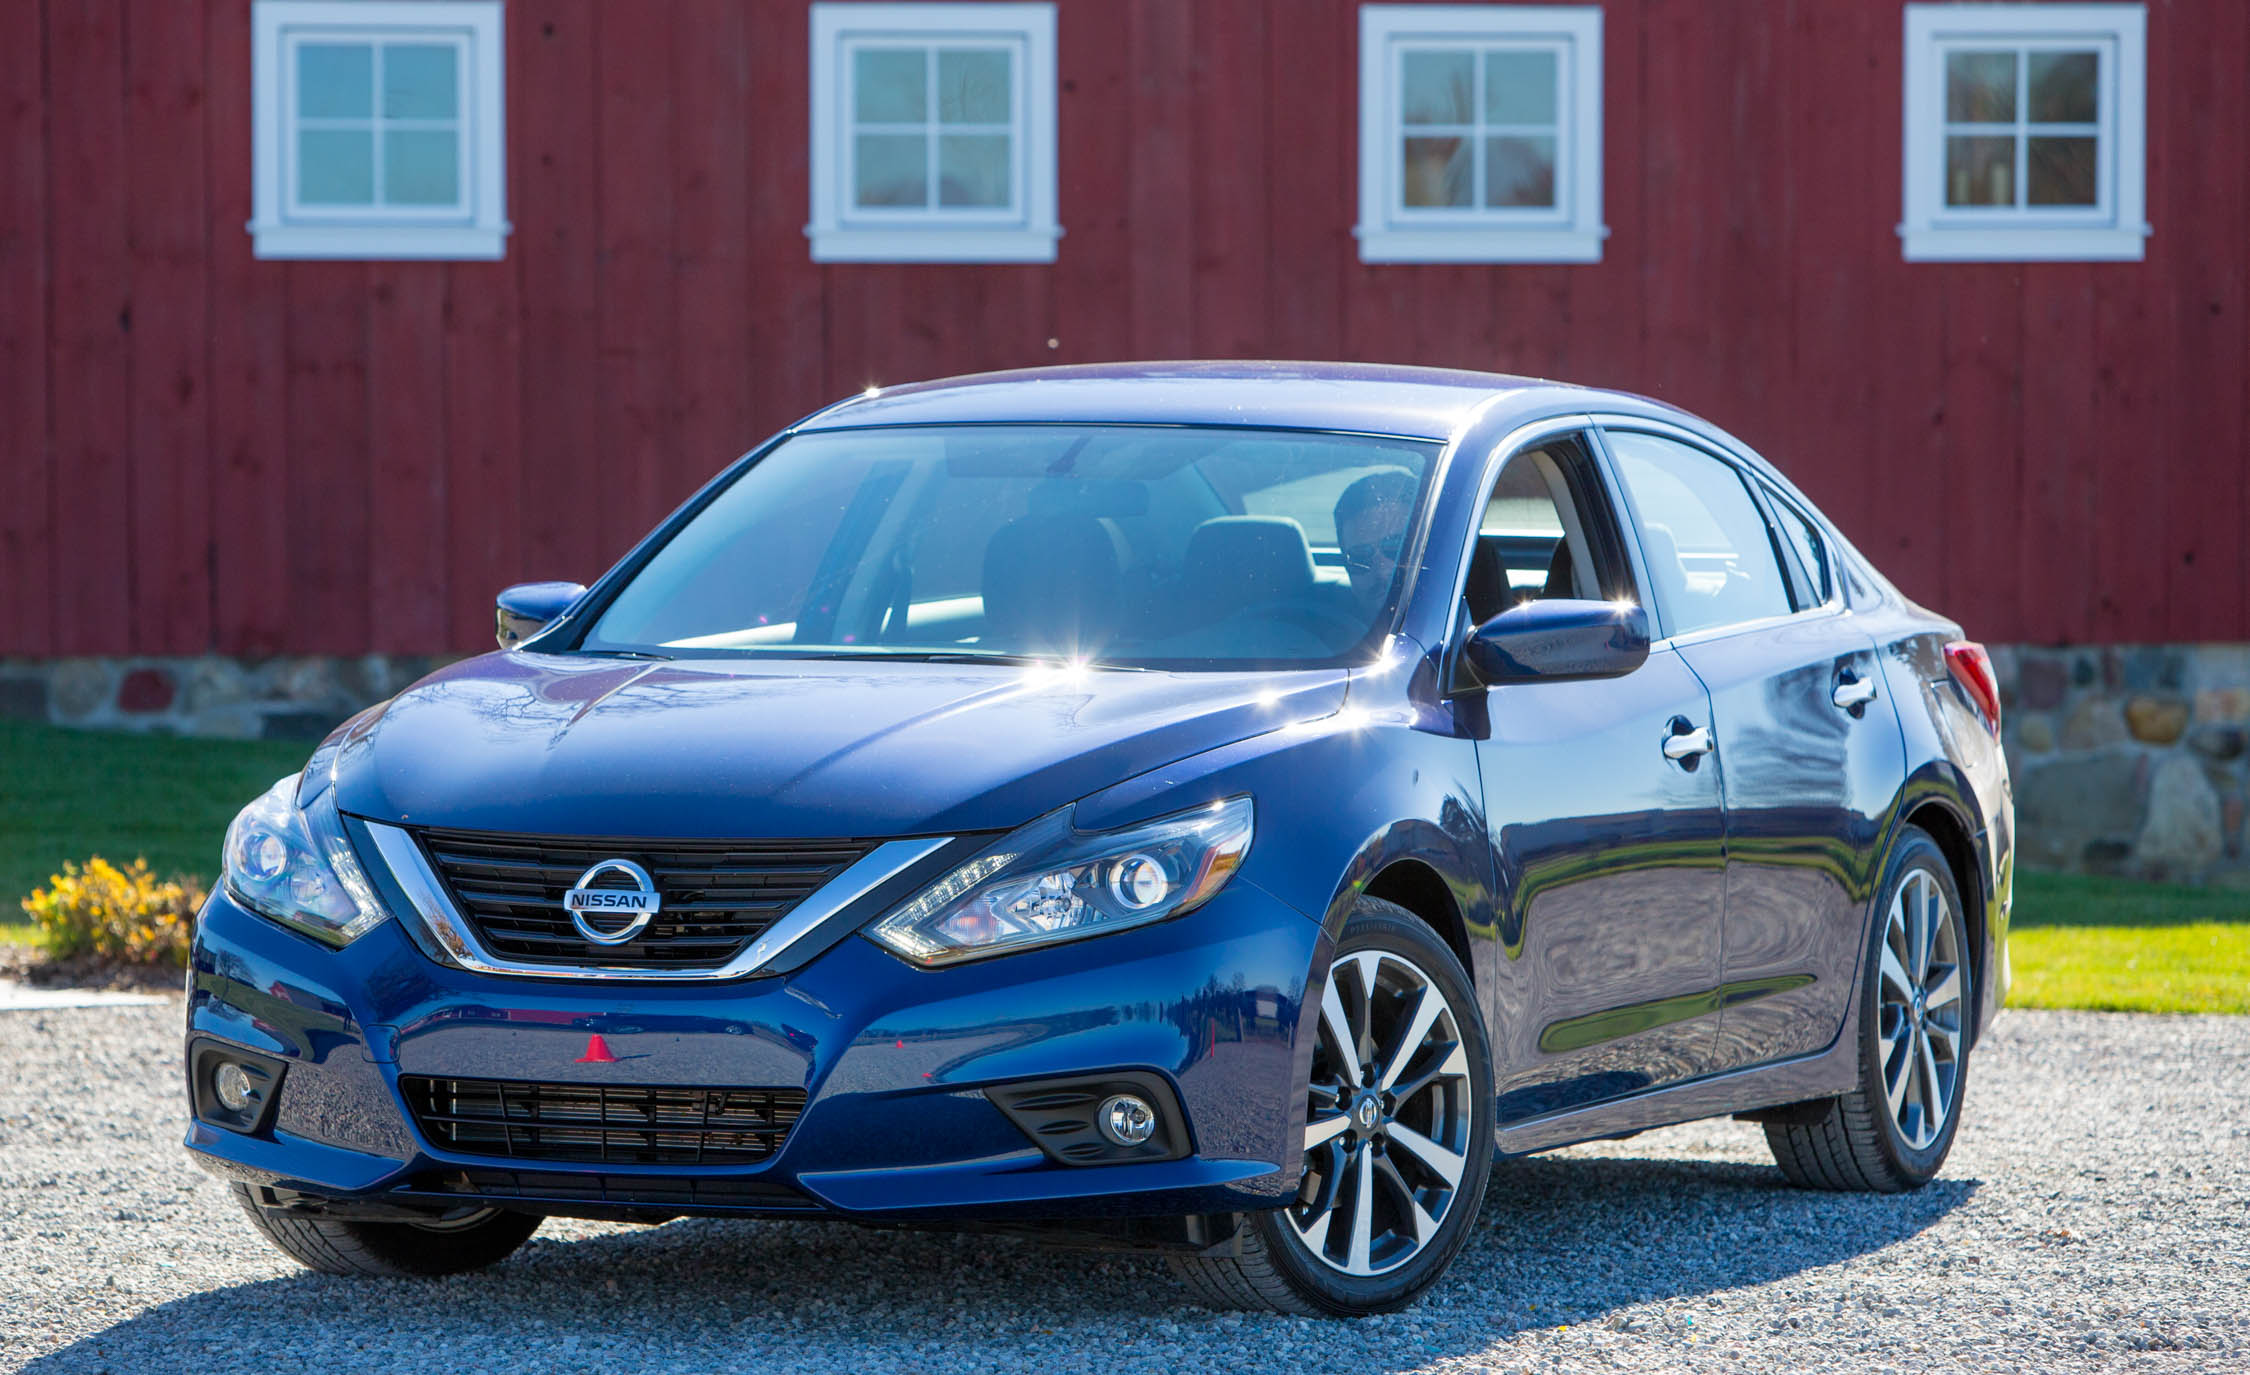 2016 nissan altima exterior 8299 cars performance reviews and test drive. Black Bedroom Furniture Sets. Home Design Ideas